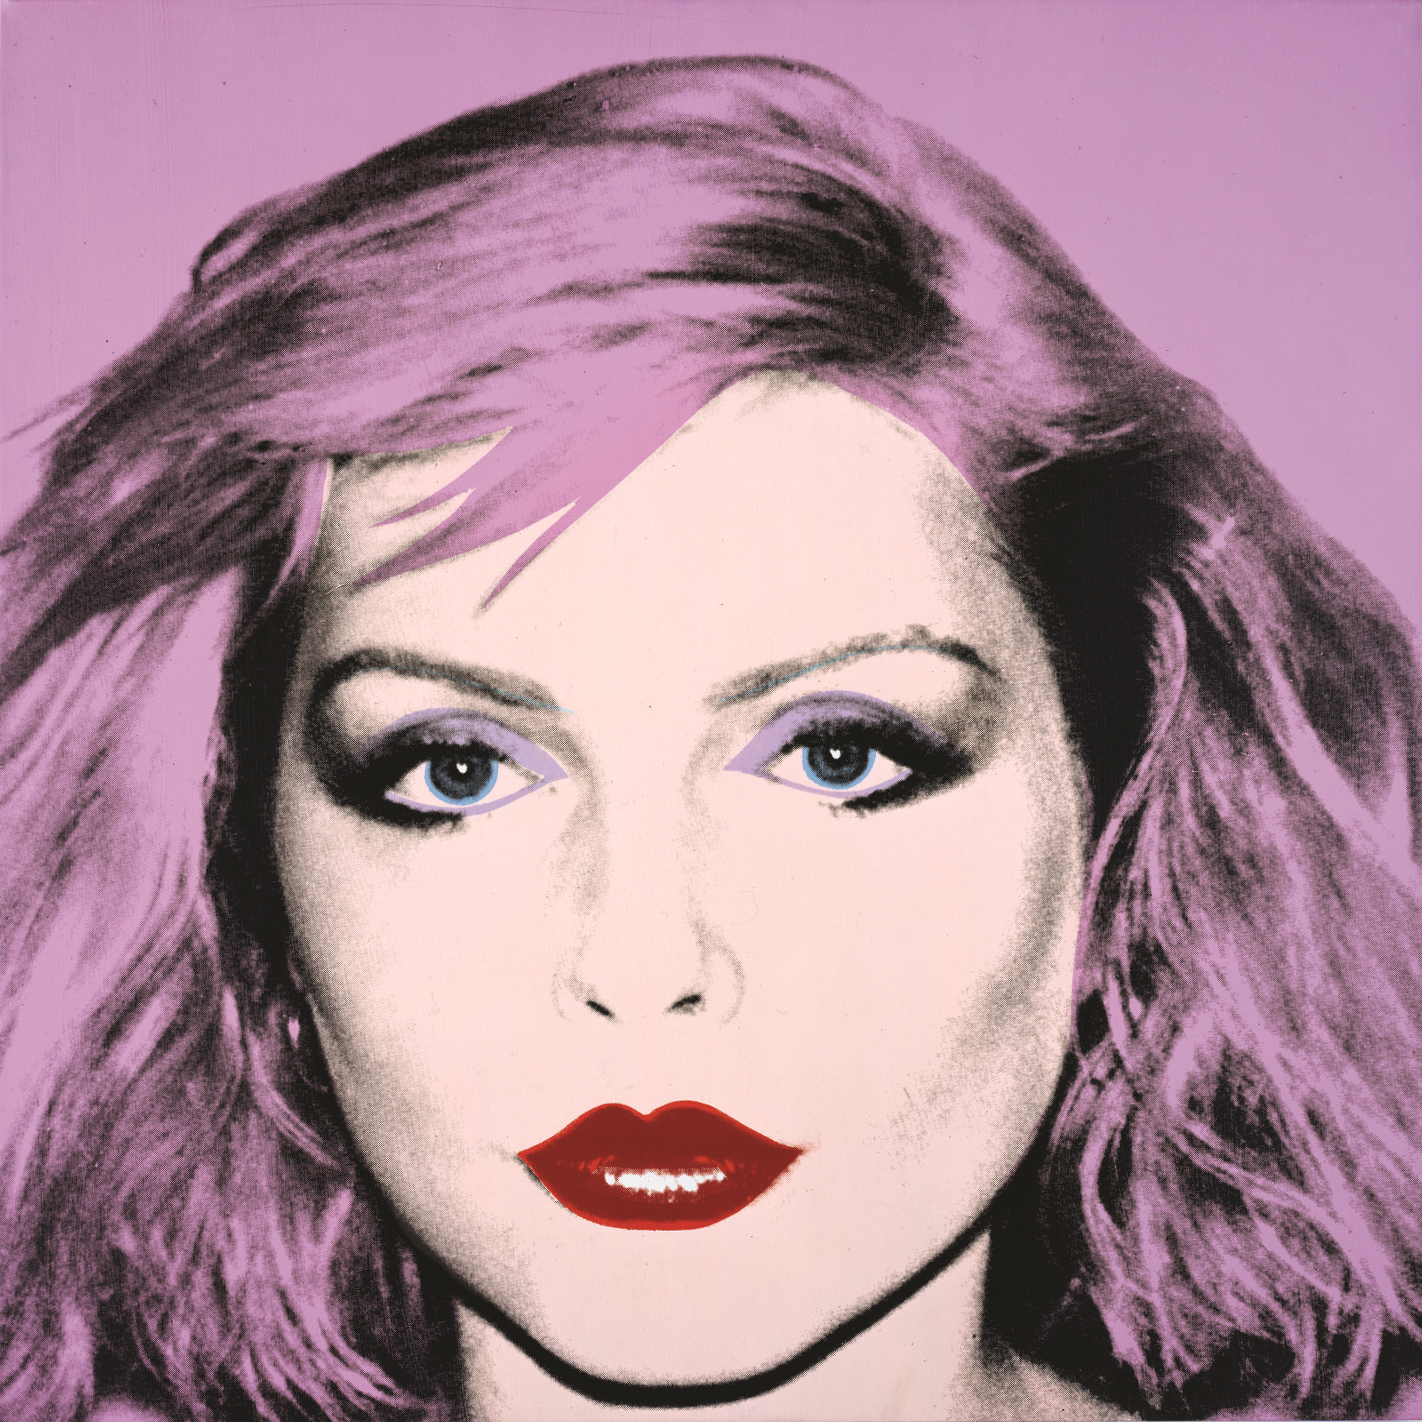 Debbie Harry (1980) by Andy Warhol. Private Collection / © The Andy Warhol Foundation for the Visual Arts, Inc. From Andy Warhol Portraits